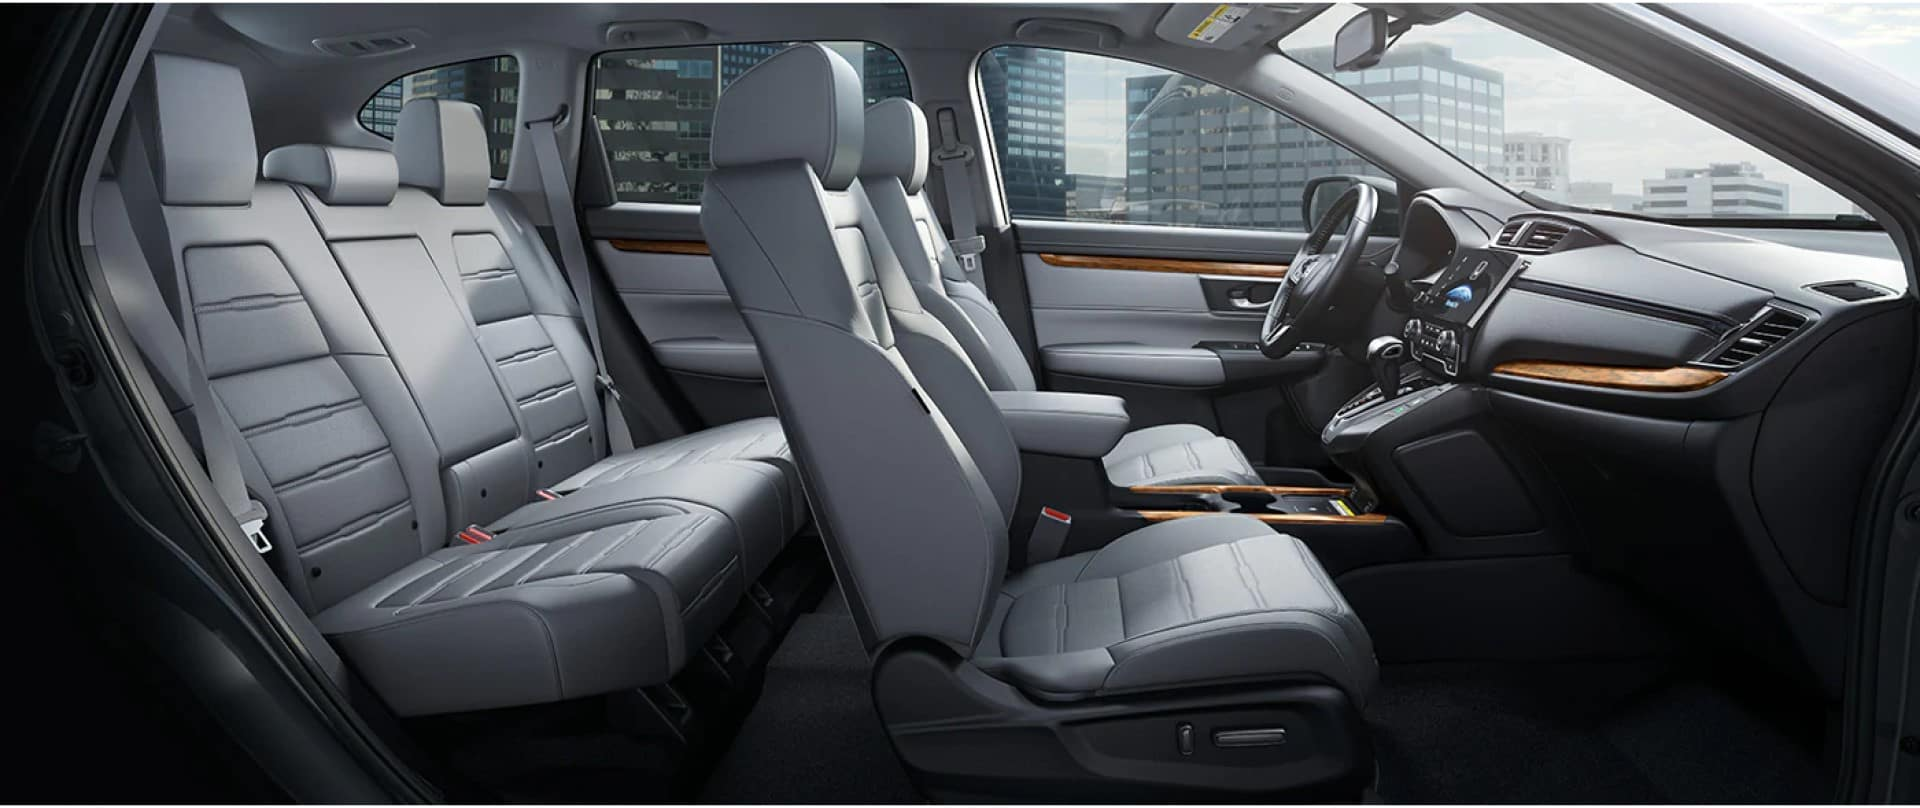 Honda_CR-V_Cabin_Space